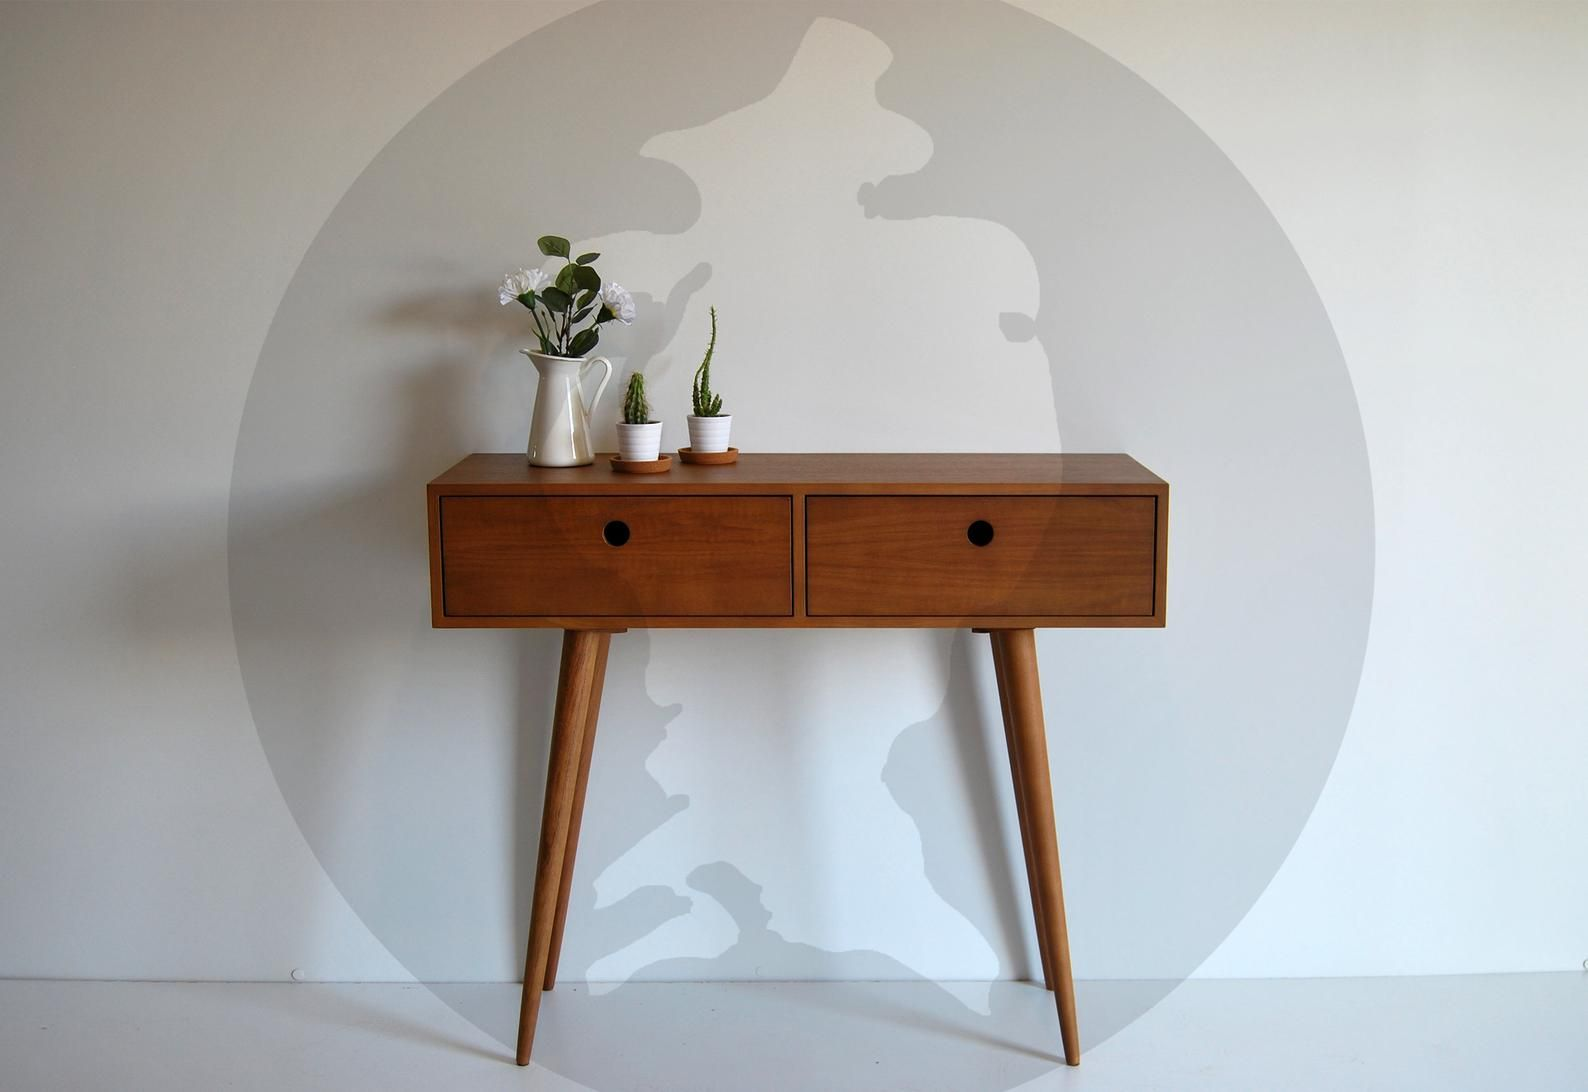 Moderrn Mid Century Dressing Table Console Sideboard With 2 Drawers Retro Scandinavian Design Bedroom Furniture In 2020 Mid Century Dressing Table Scandinavian Design Bedroom Custom Furniture